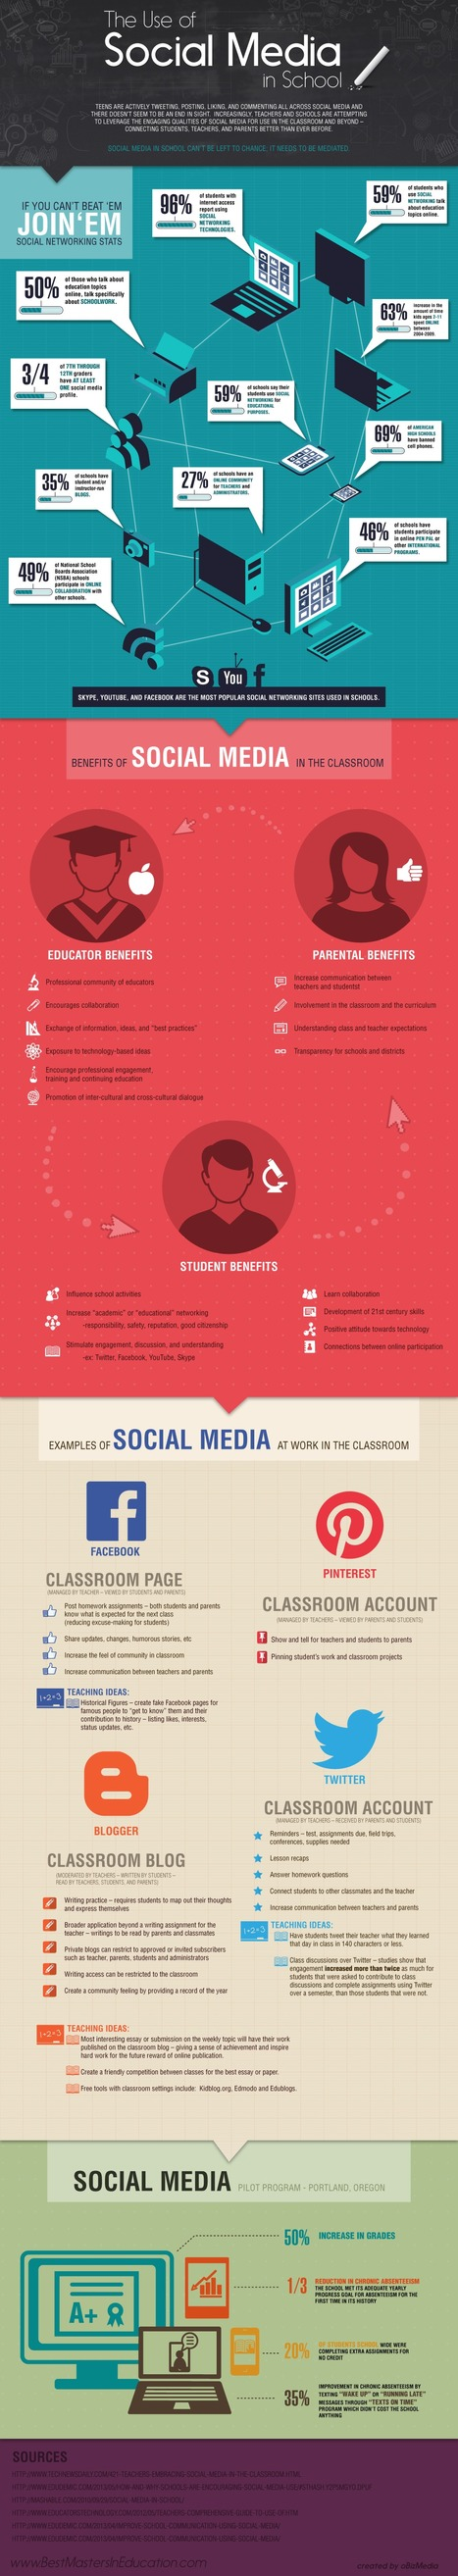 Social Media 101: Is There a Place For Social Media in Classrooms? [Infographic] | Teaching & Learning in Higher Education | Scoop.it